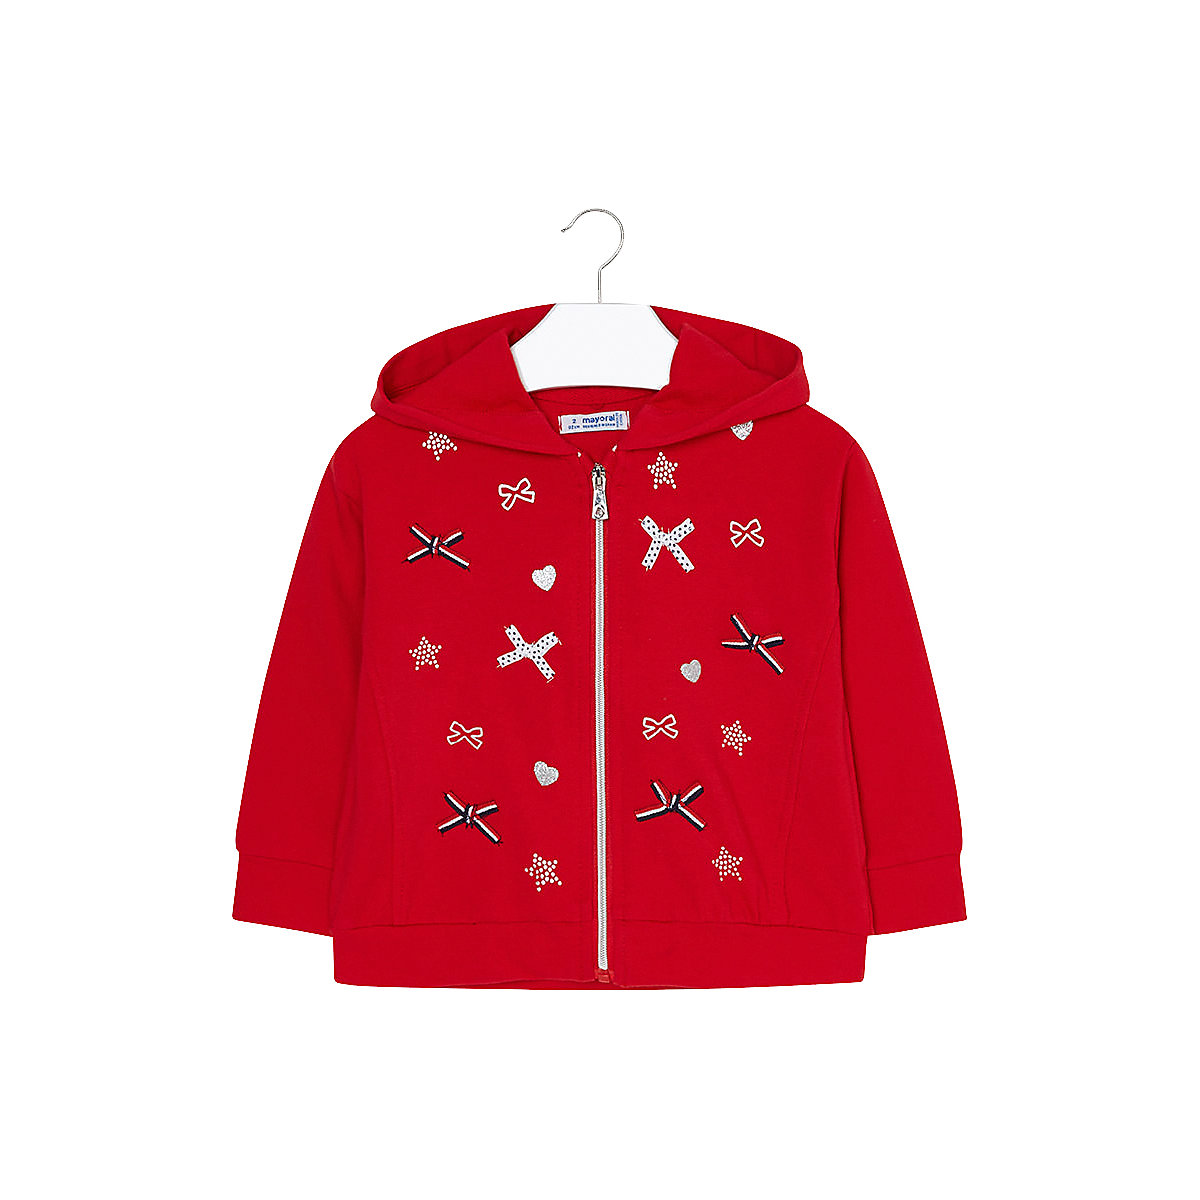 Sweaters MAYORAL 10681392 sweatshirt hoodies for kids cardigan clothes for girls and boys cardigan for boys kotmarkot 15508 kid clothes